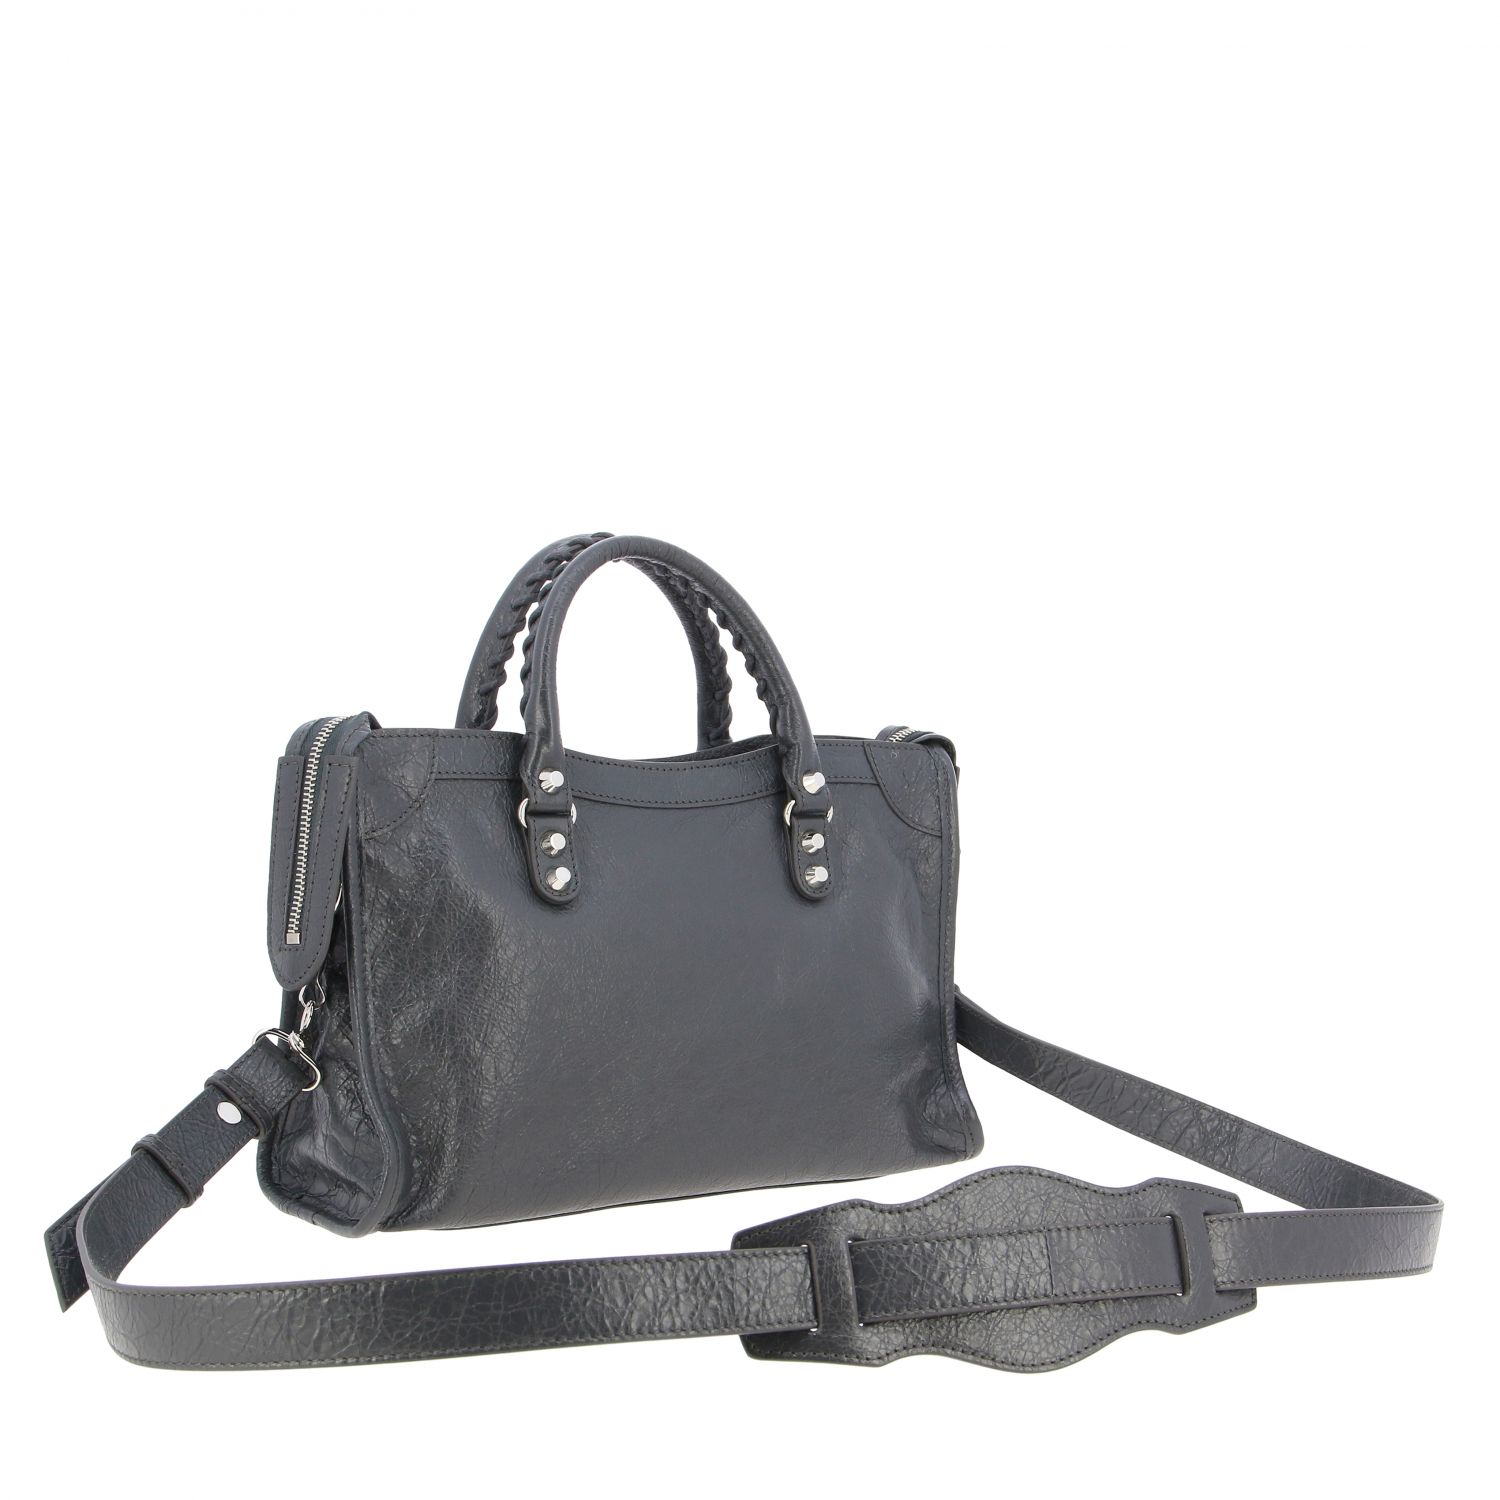 Handbag Balenciaga: Shoulder bag women Balenciaga grey 3